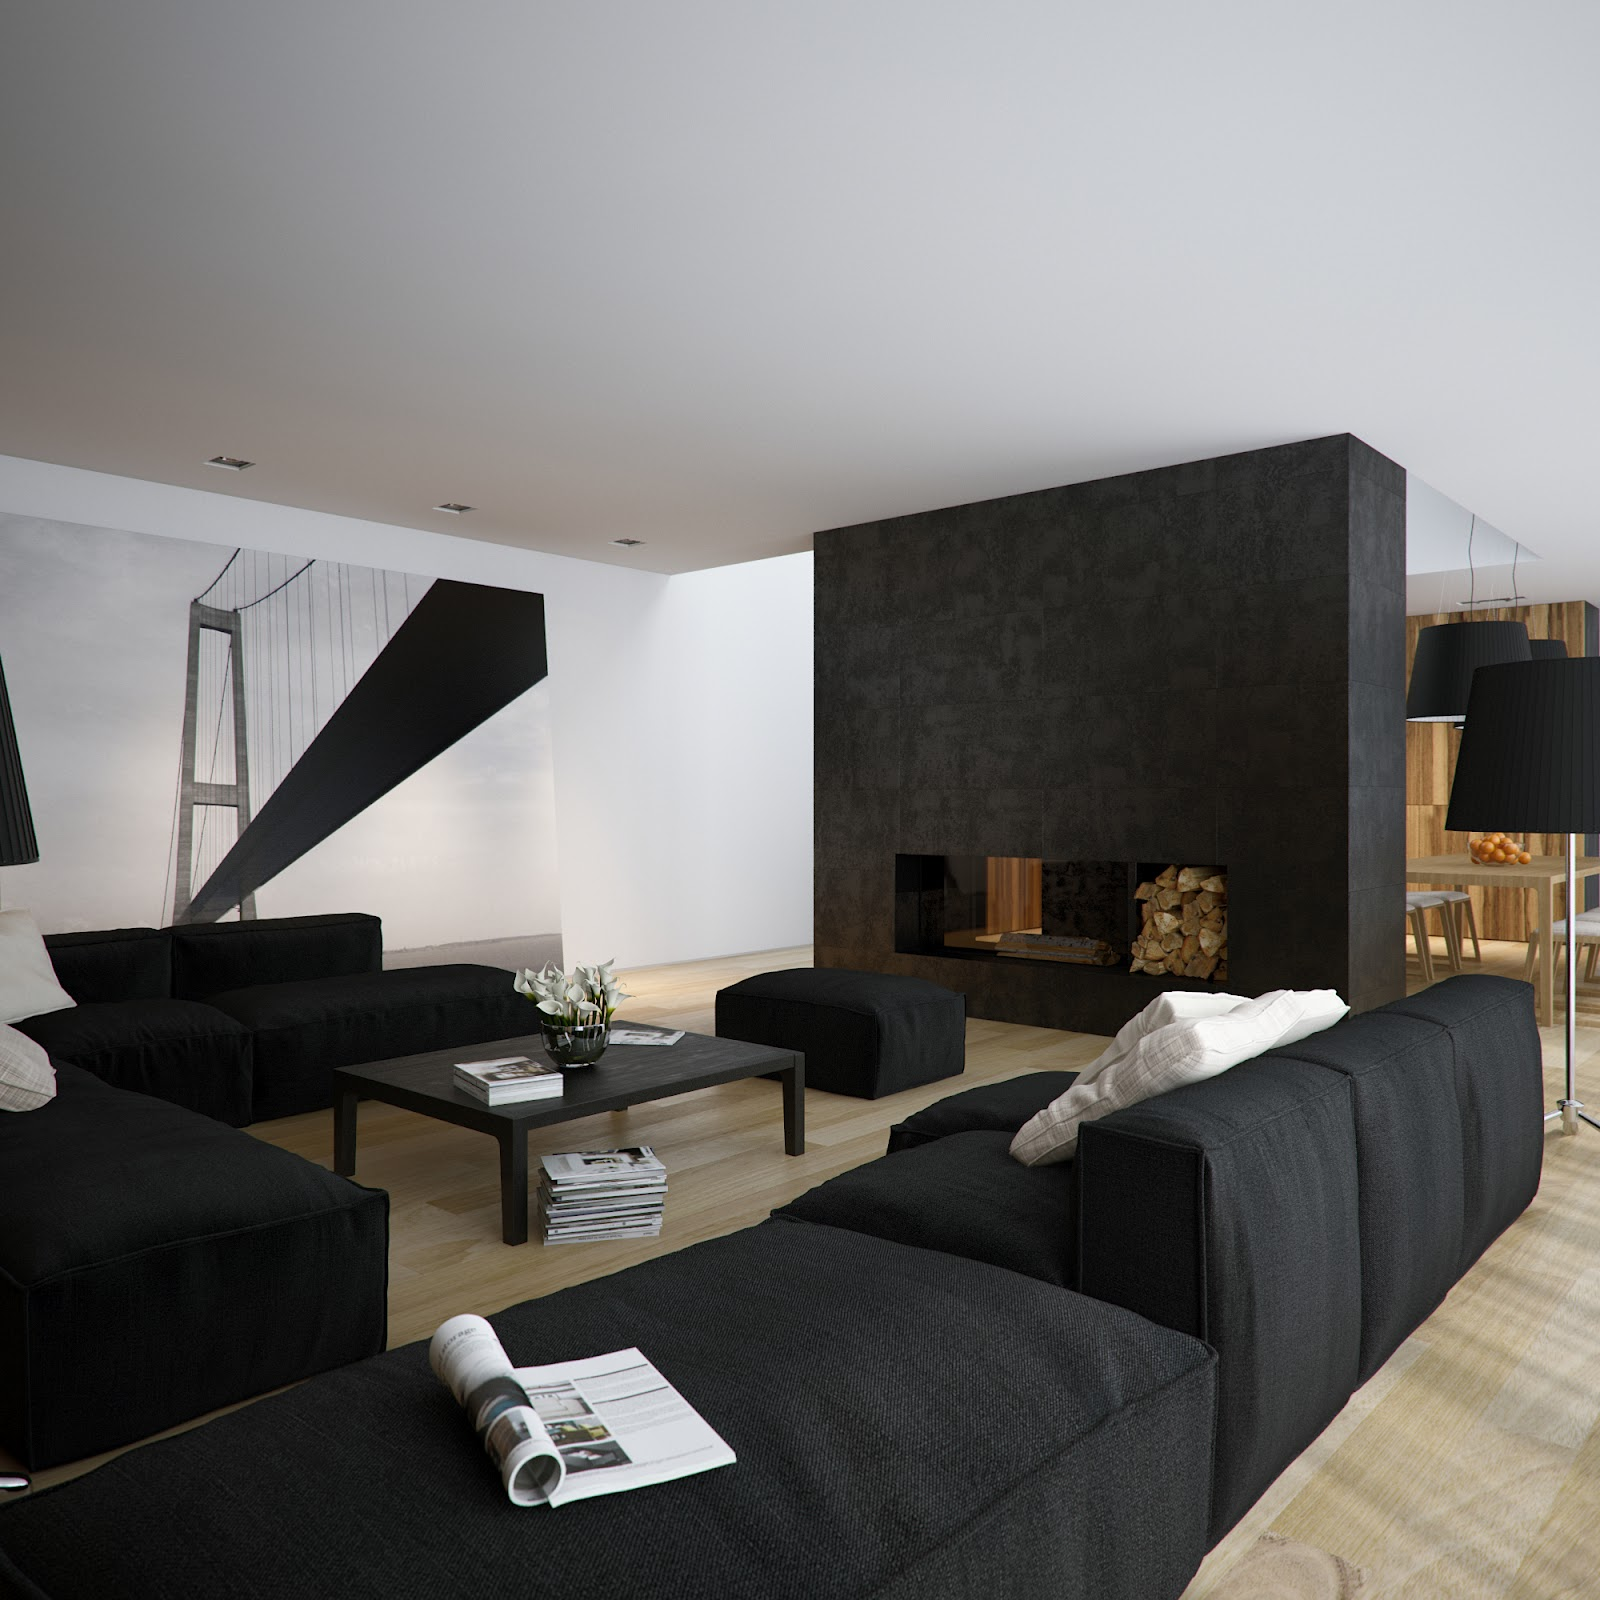 Luxury Minimalist Loft Designs In Black And White With